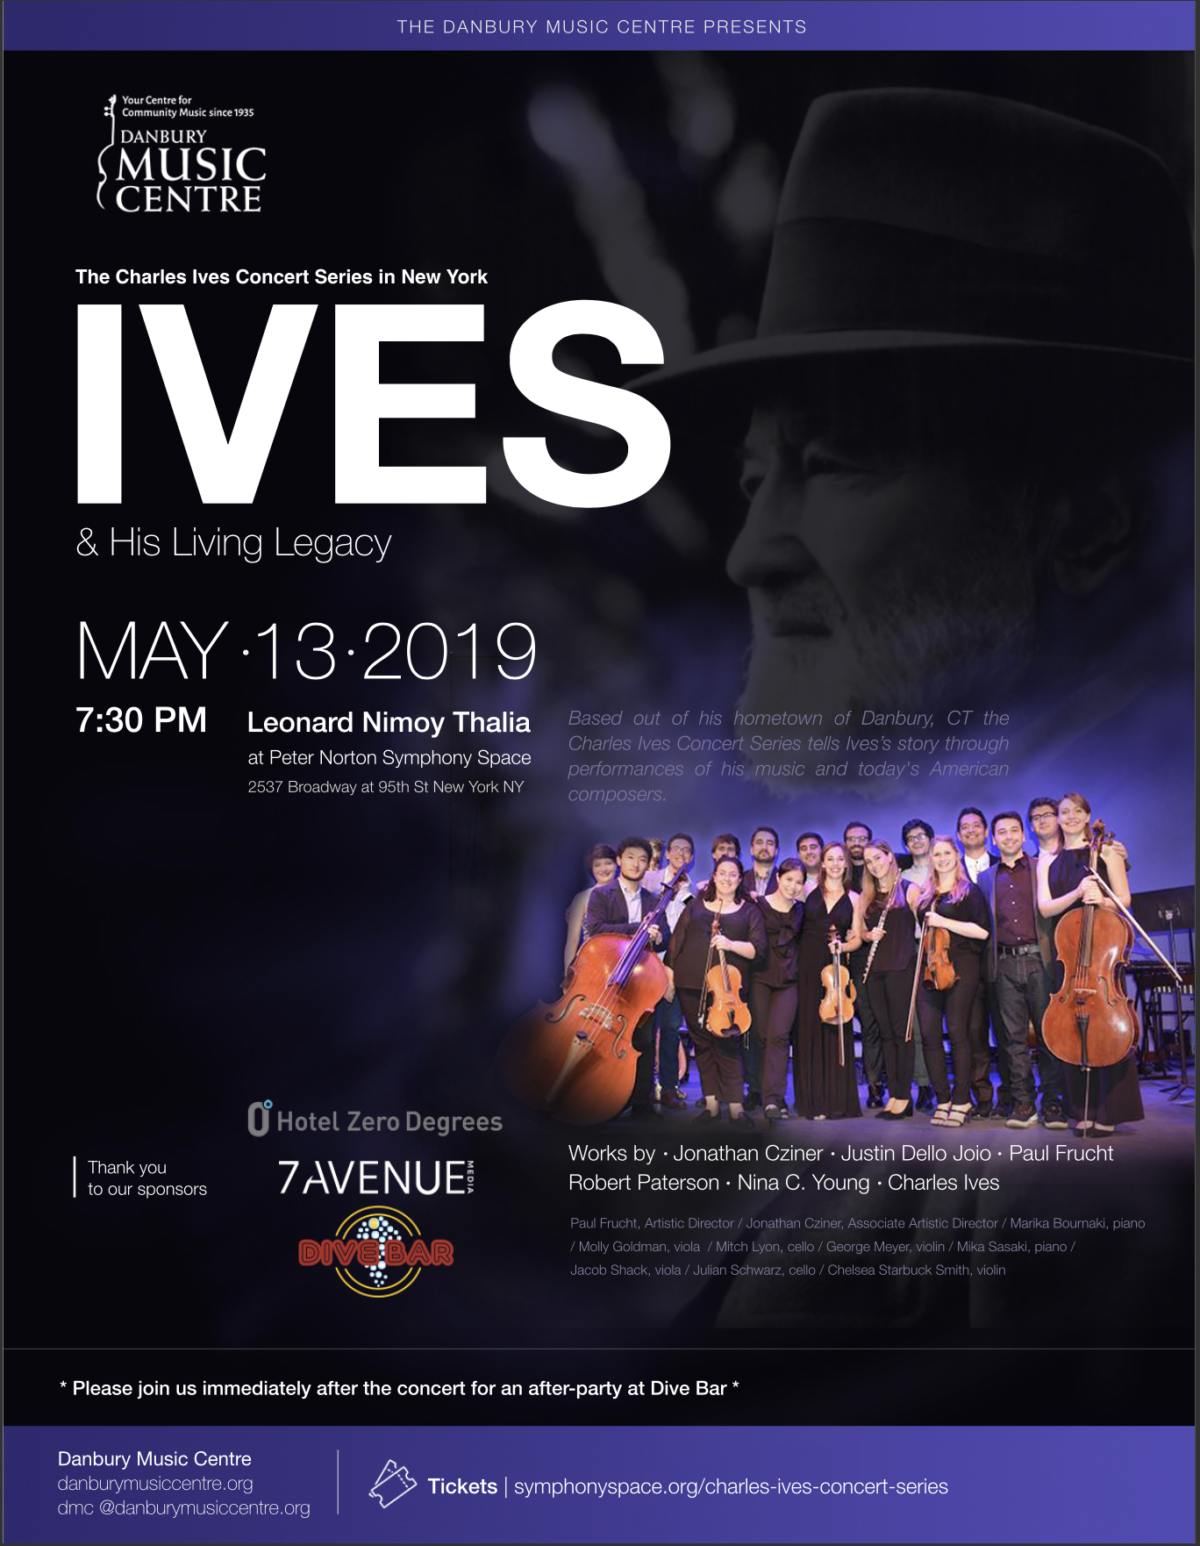 Charles Ives Concert Series Comes to New York